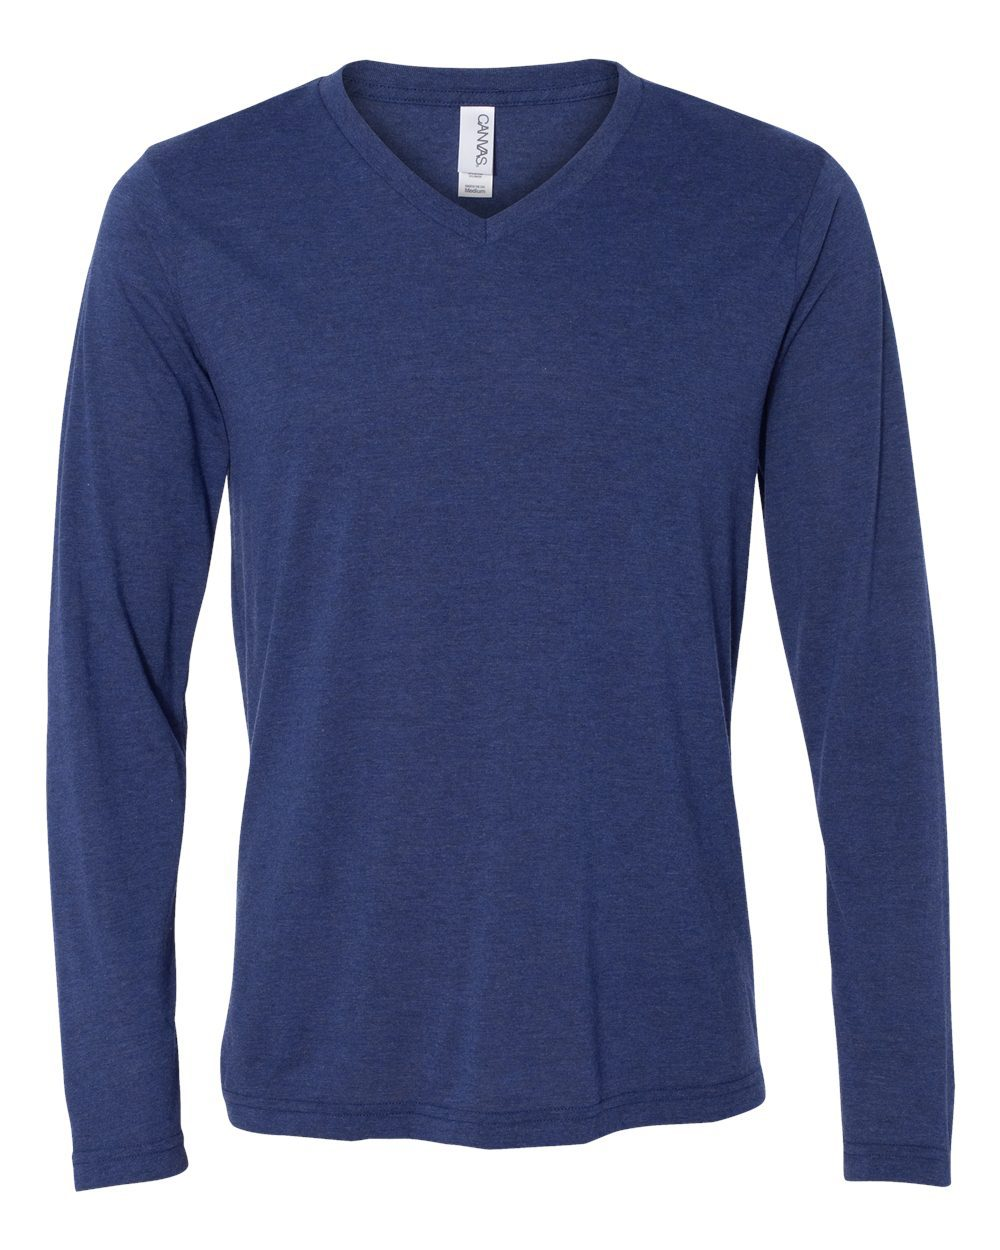 6c77a8fe808 Bella + Canvas Unisex Long Sleeve V-Neck Tee 3425 [$12.34] | Hosiery and  More